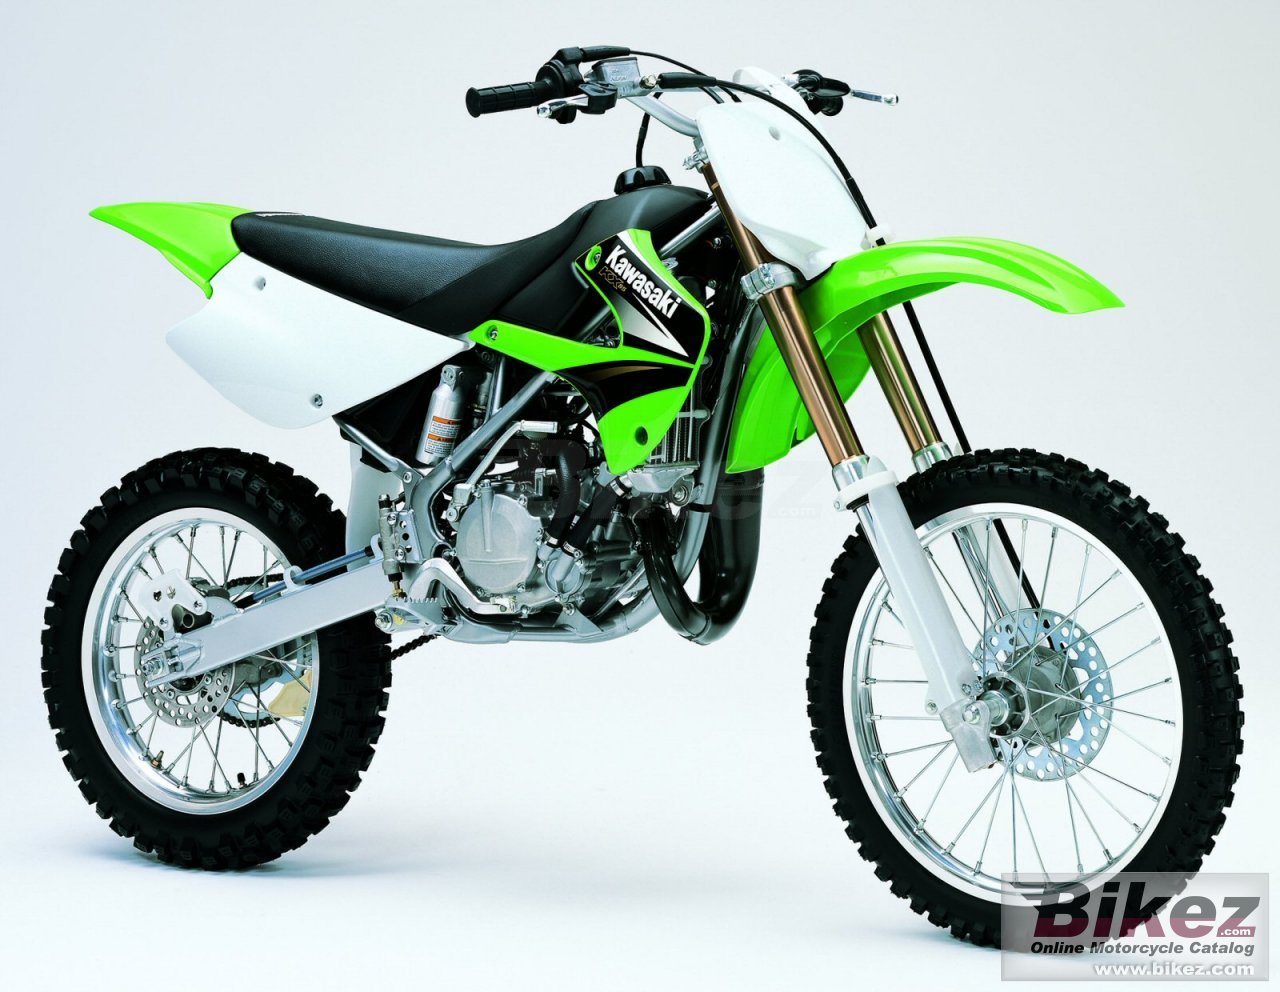 Big Kawasaki kx 85-ii picture and wallpaper from Bikez.com